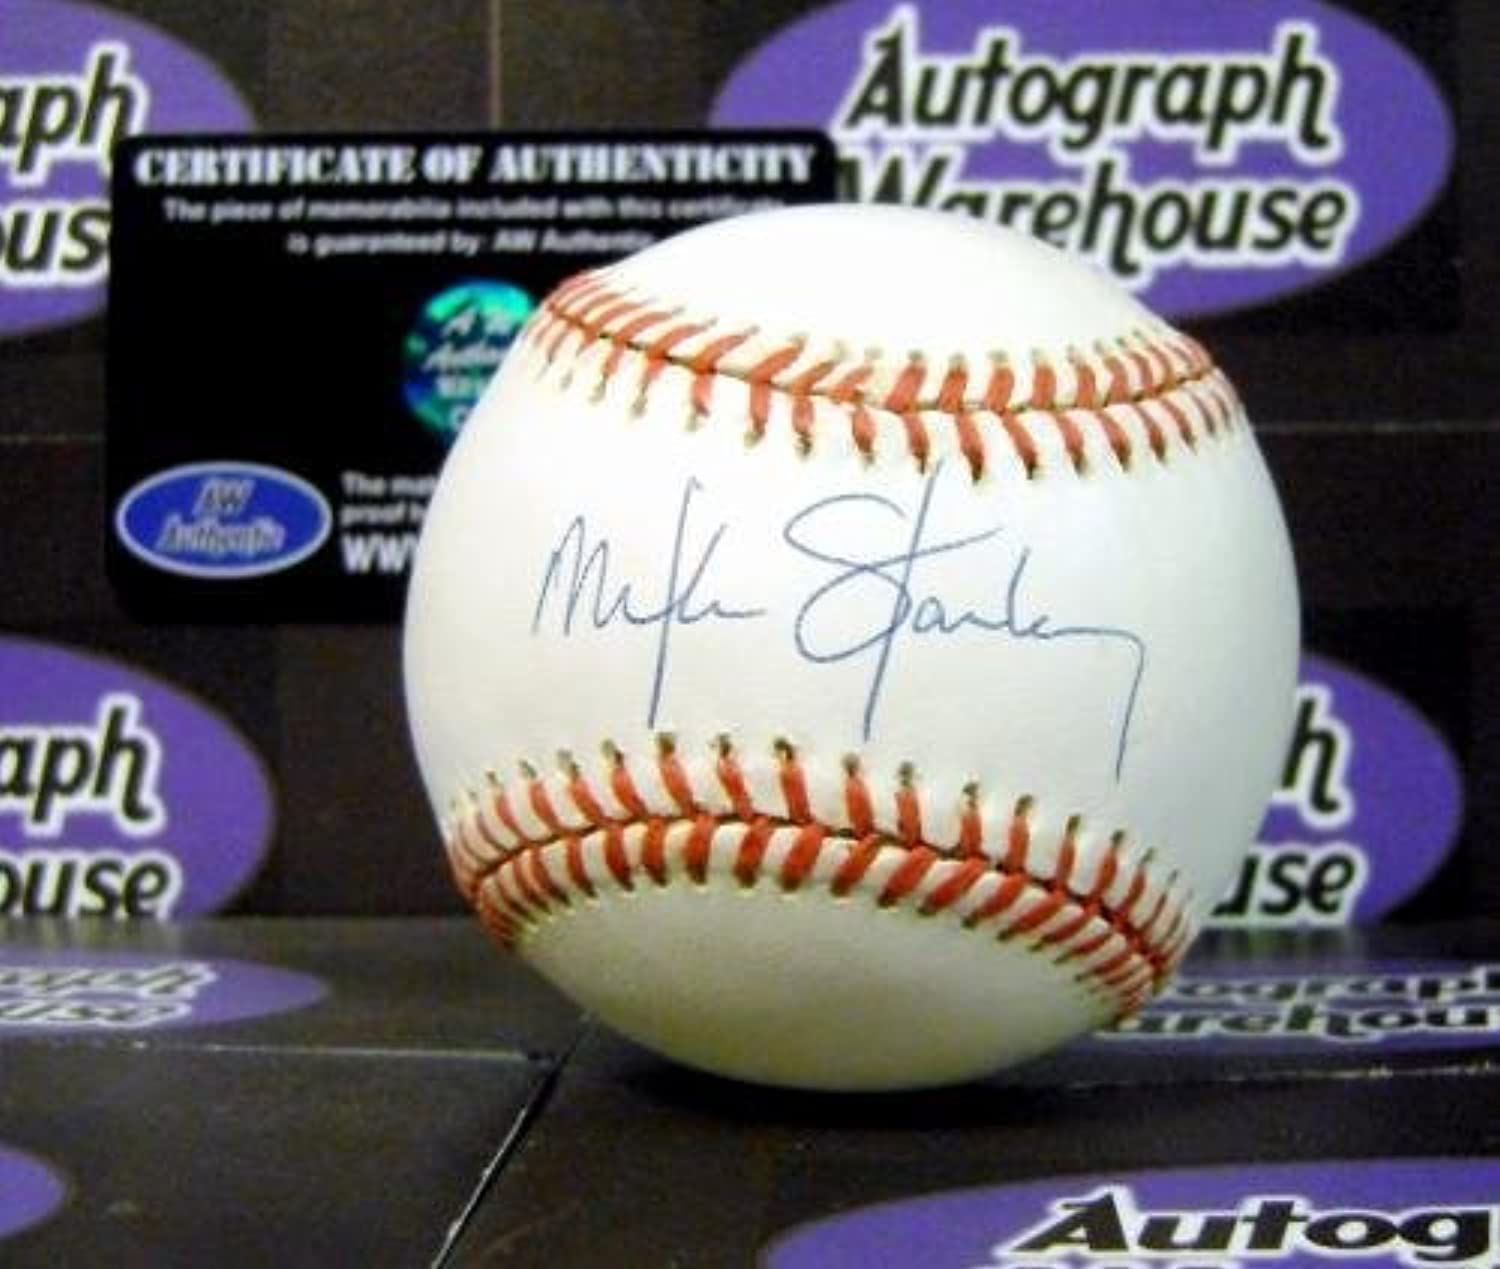 Mike Stanley Signed Ball  Slight yellowed spotty)  Autographed Baseballs